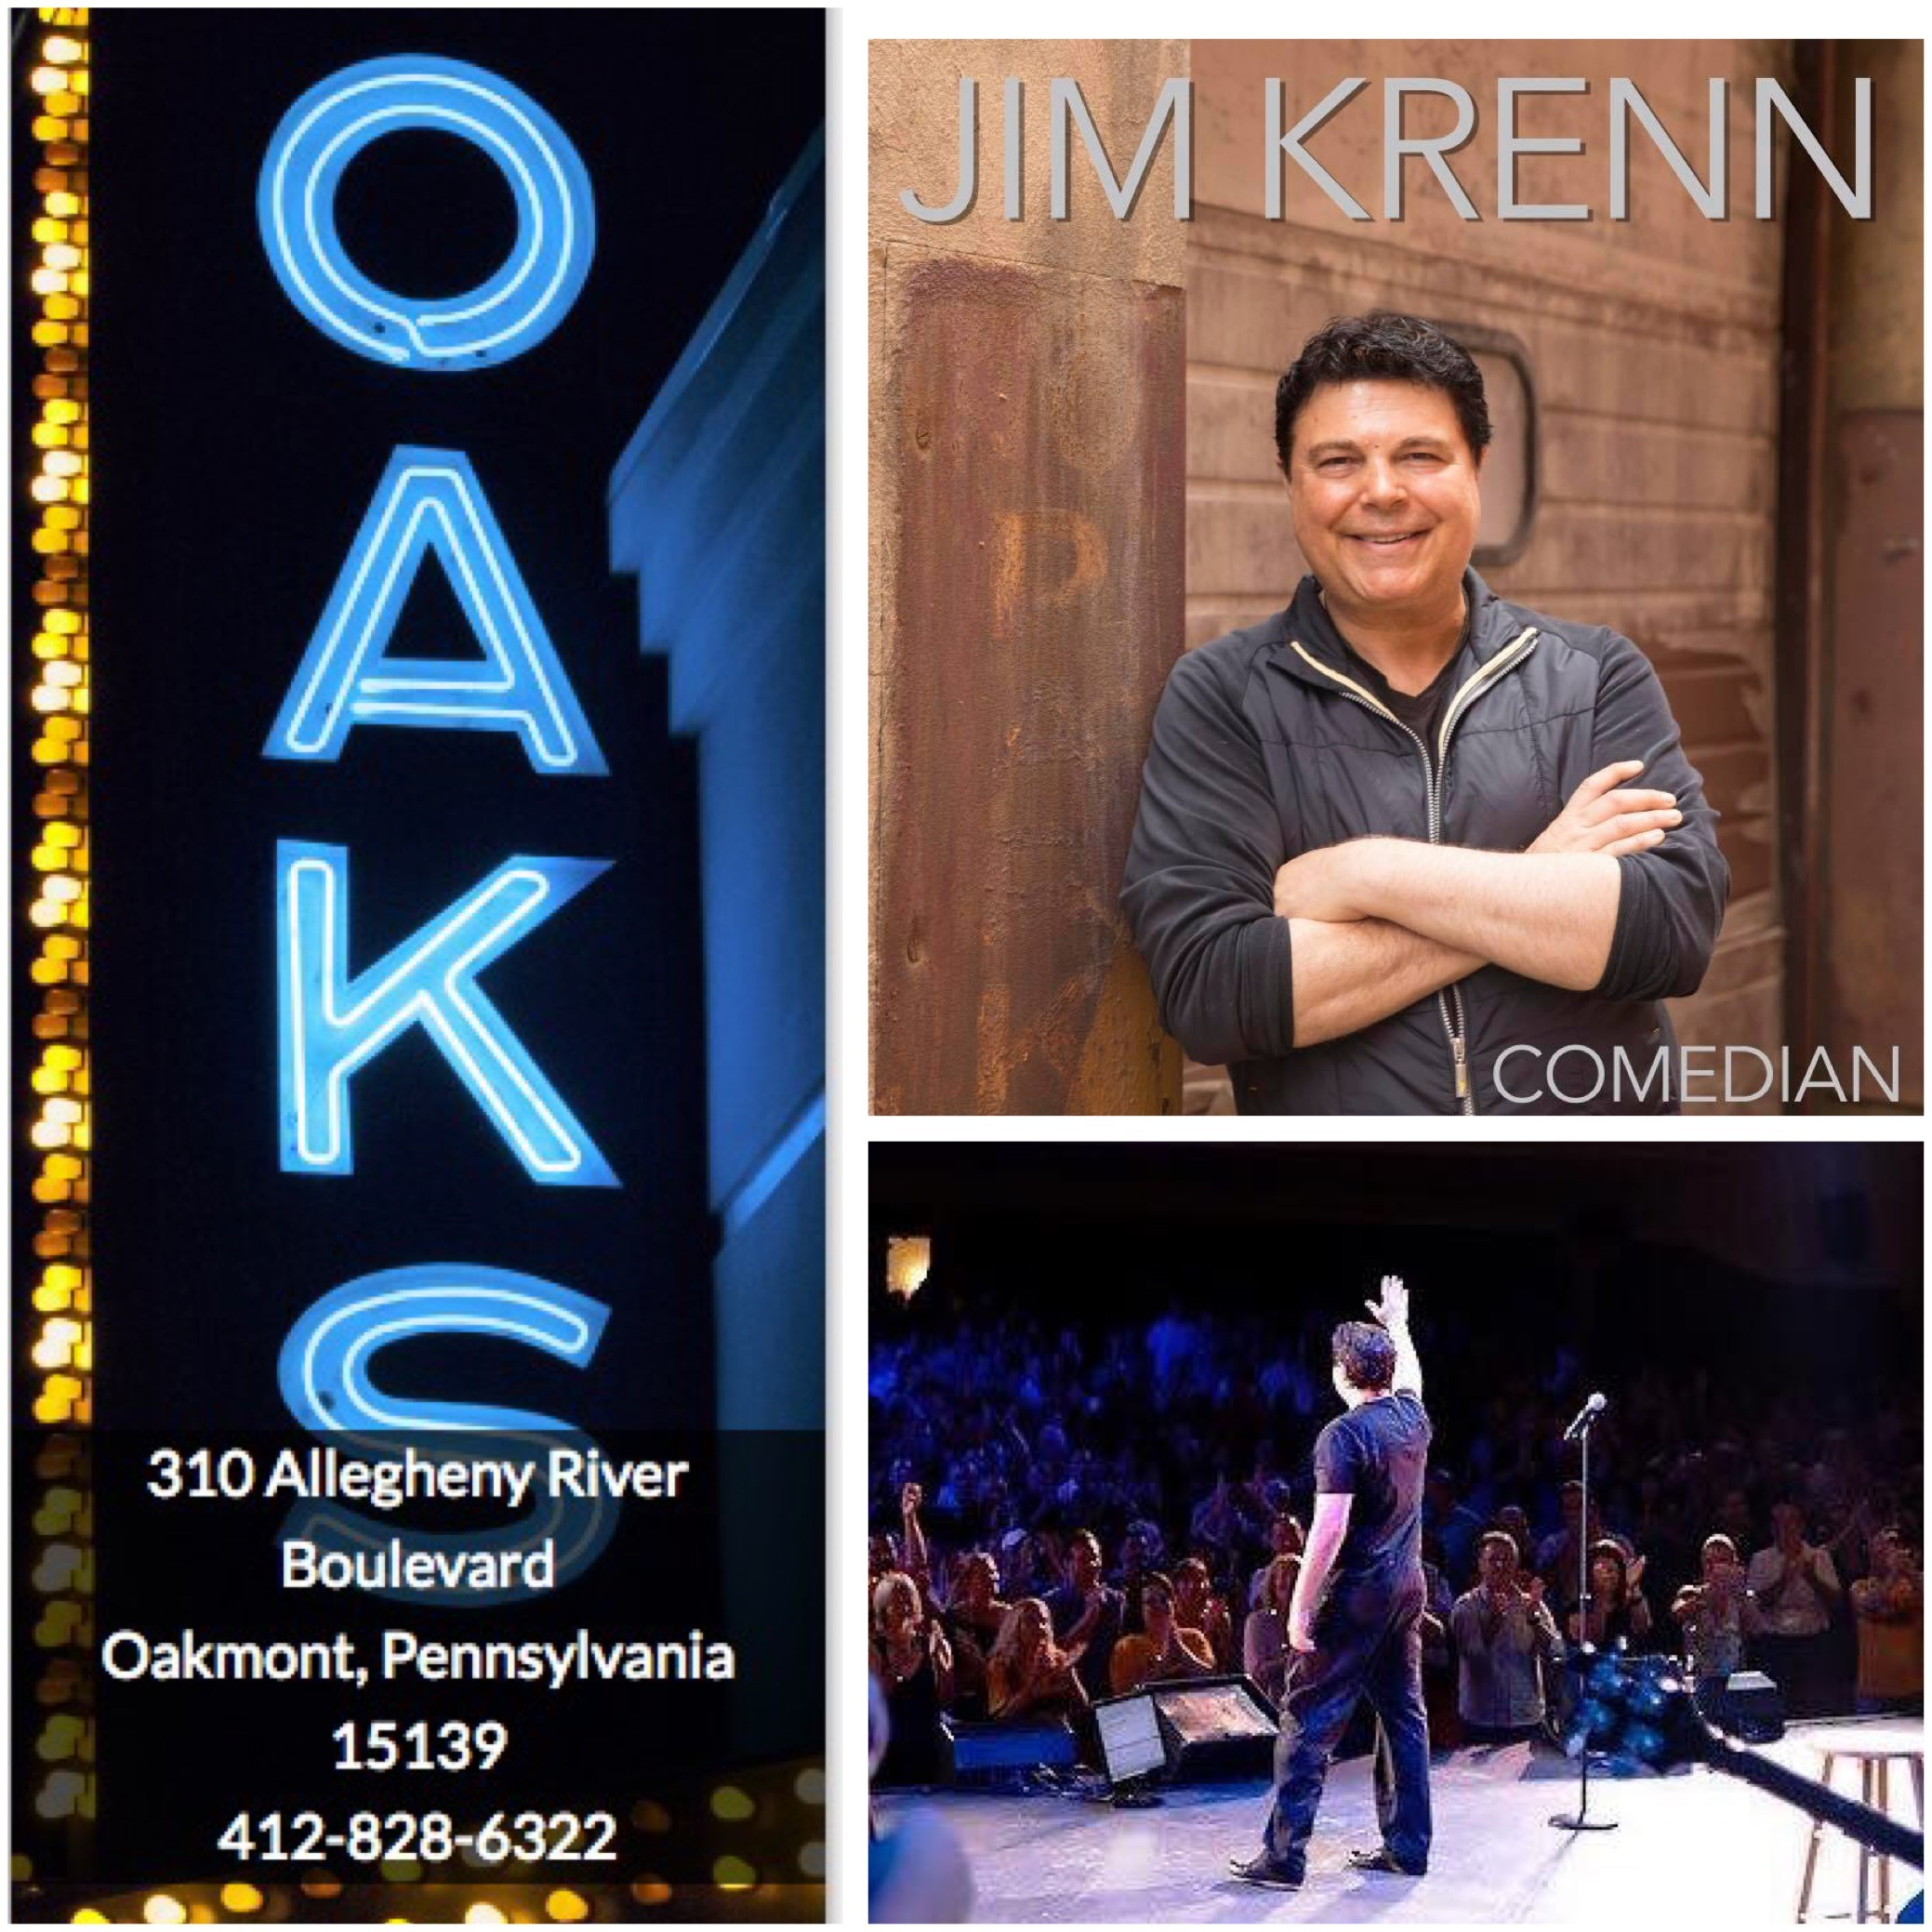 Jimmy Krenn, Pittsburgh Comedy, Oaks Theater